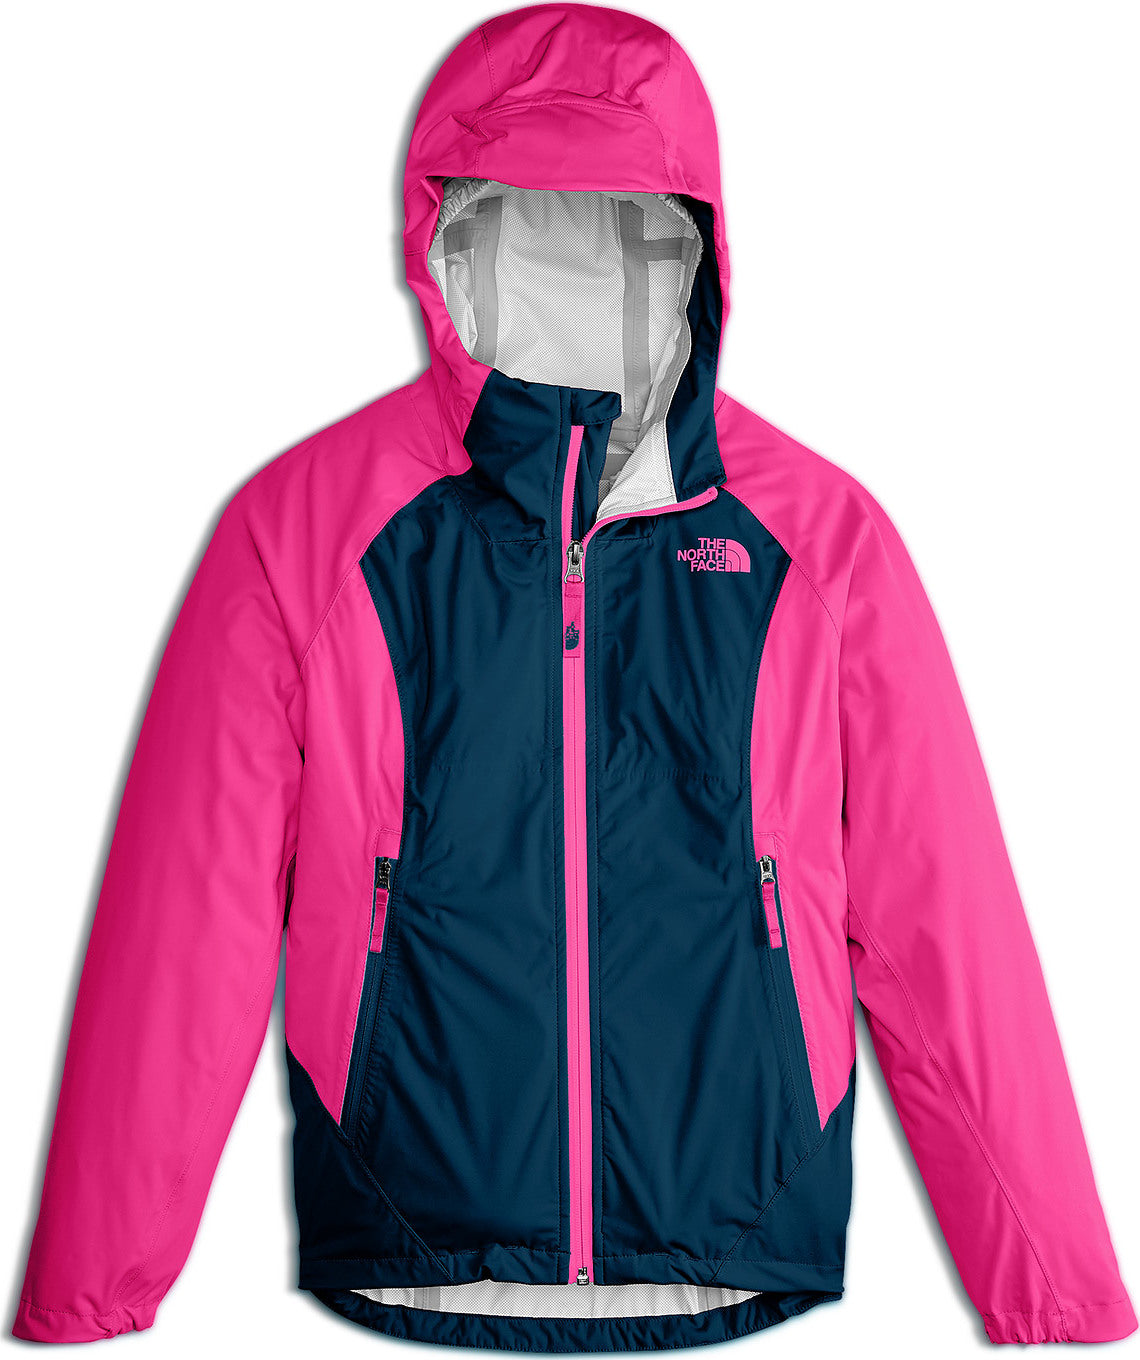 0629fd84734 The North Face Girl s Allproof Stretch Jacket